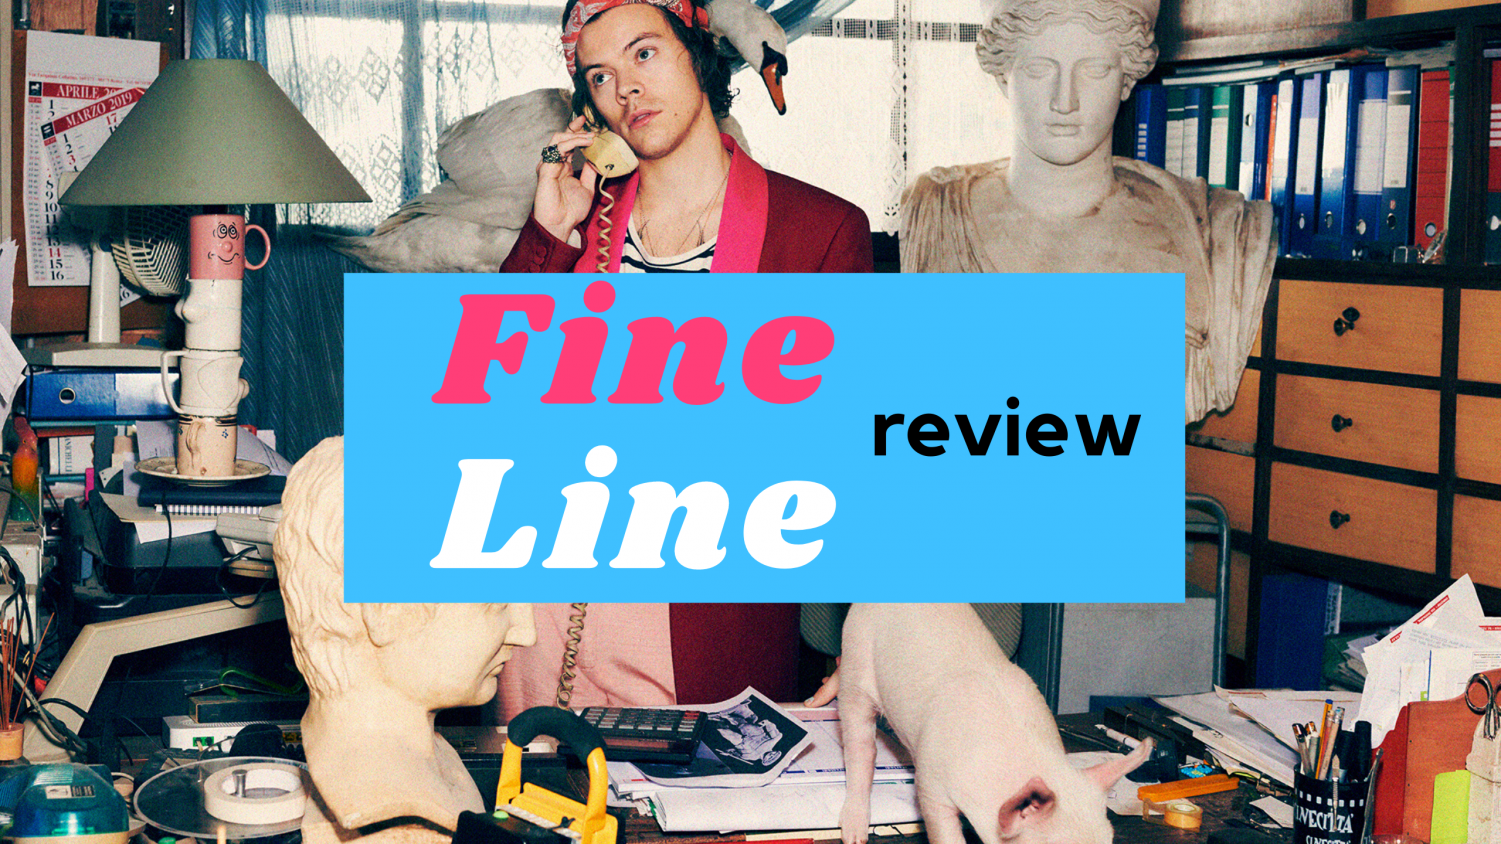 """Harry Styles' highly anticipated album, Fine Line, released Friday, December 13. With a total of 12 songs, Styles provided his fans with a mix of indie, pop, and alternative tracks. """"To Be So Lonely,"""" """"Cherry"""" and """"Falling"""" exposed Styles' vulnerability, and """"Treat People With Kindness"""" left listeners wanting to dance along. The album lived up to fan expectations and even exceeded them."""